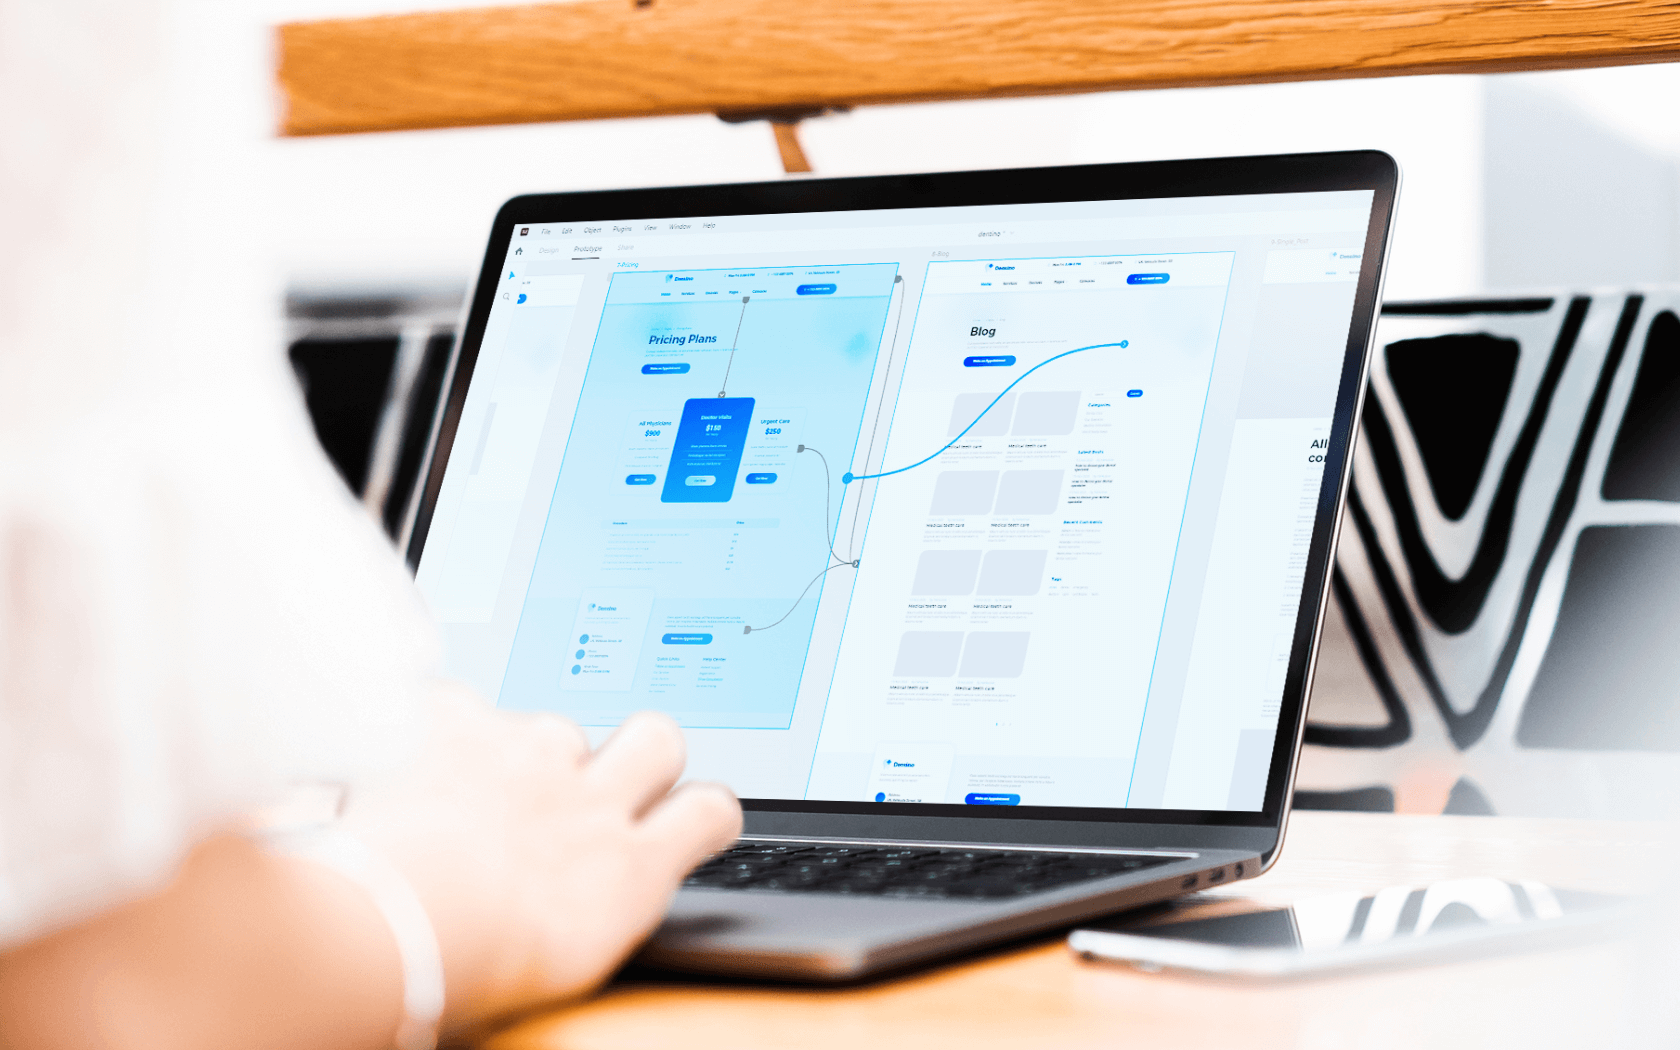 9 Reasons Why XD is Our UI/UX Design Tool of Choice